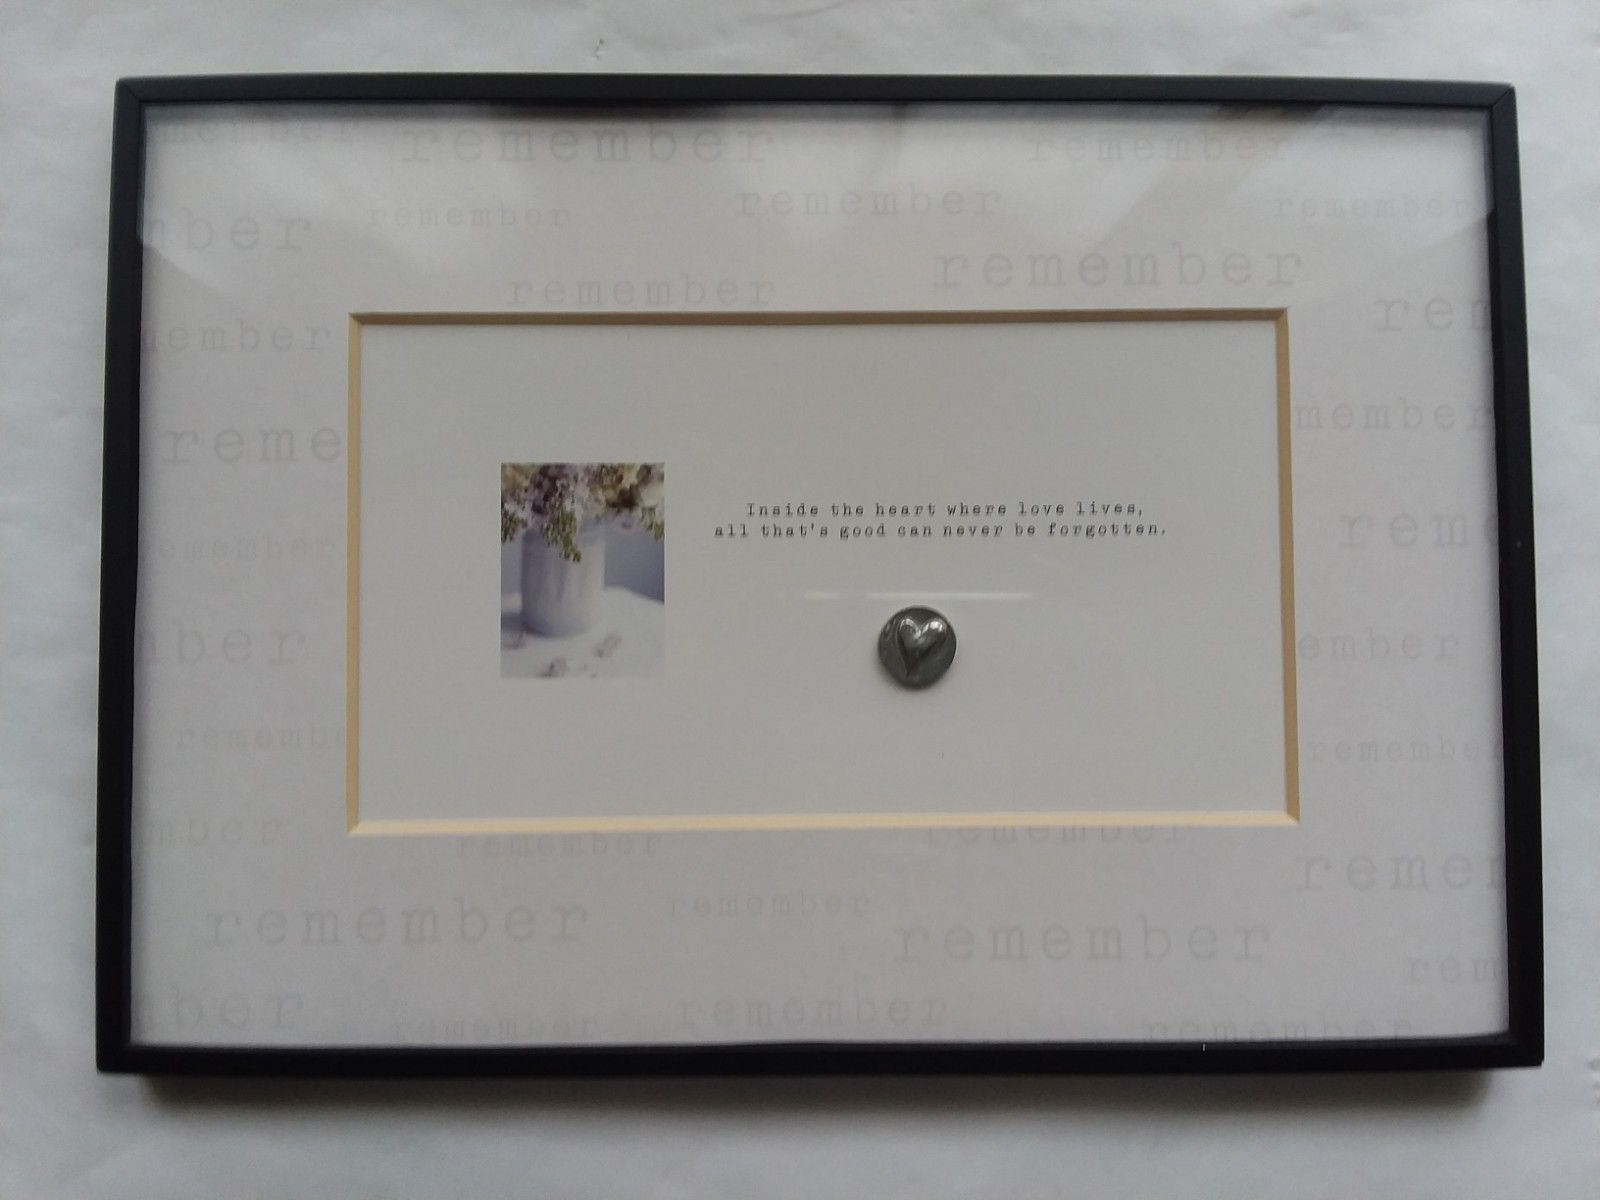 "Remember Love Gift Picture Framed Plaque Wall Hanging 12 1/2"" x 8 3/4"" Hallmark"